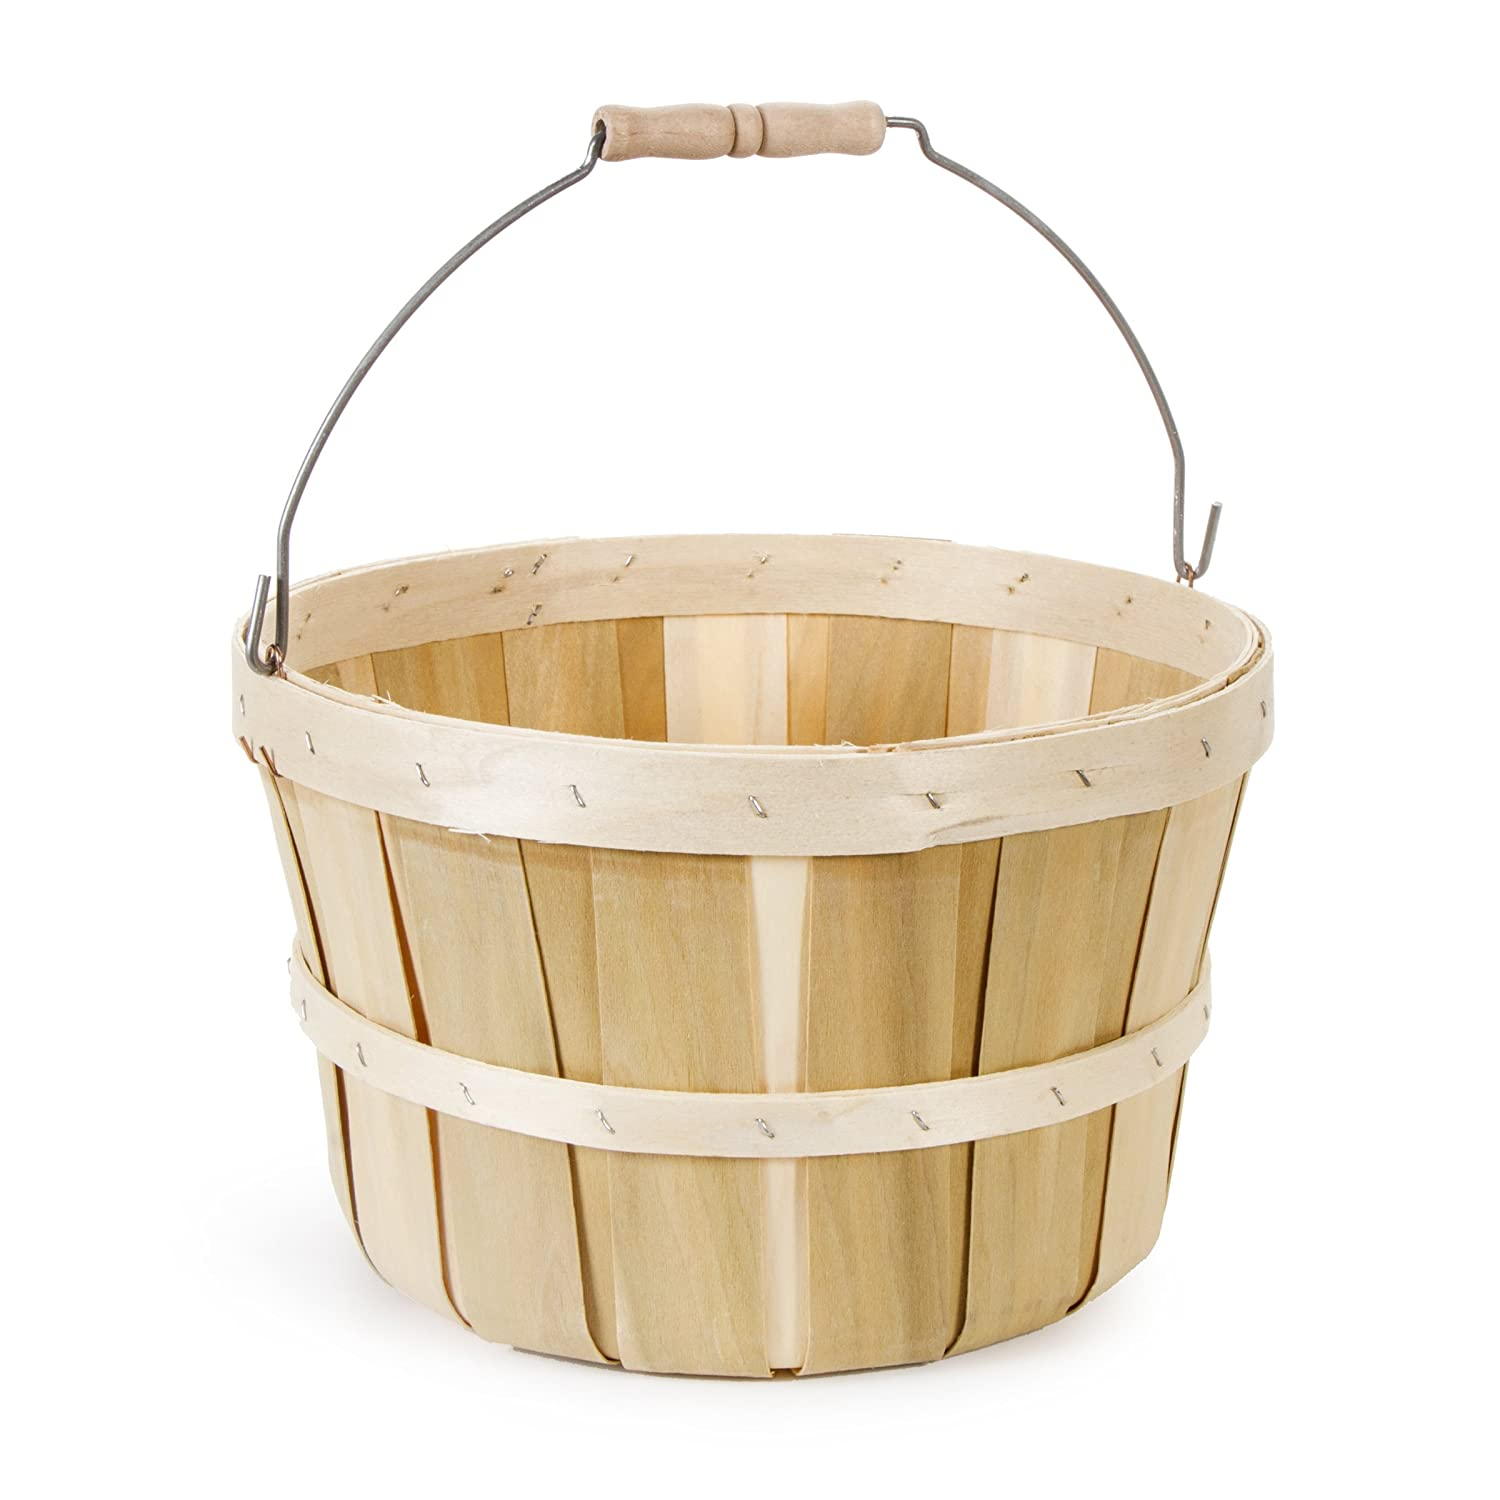 Darice Natural Wood Round Chip Basket with Handle